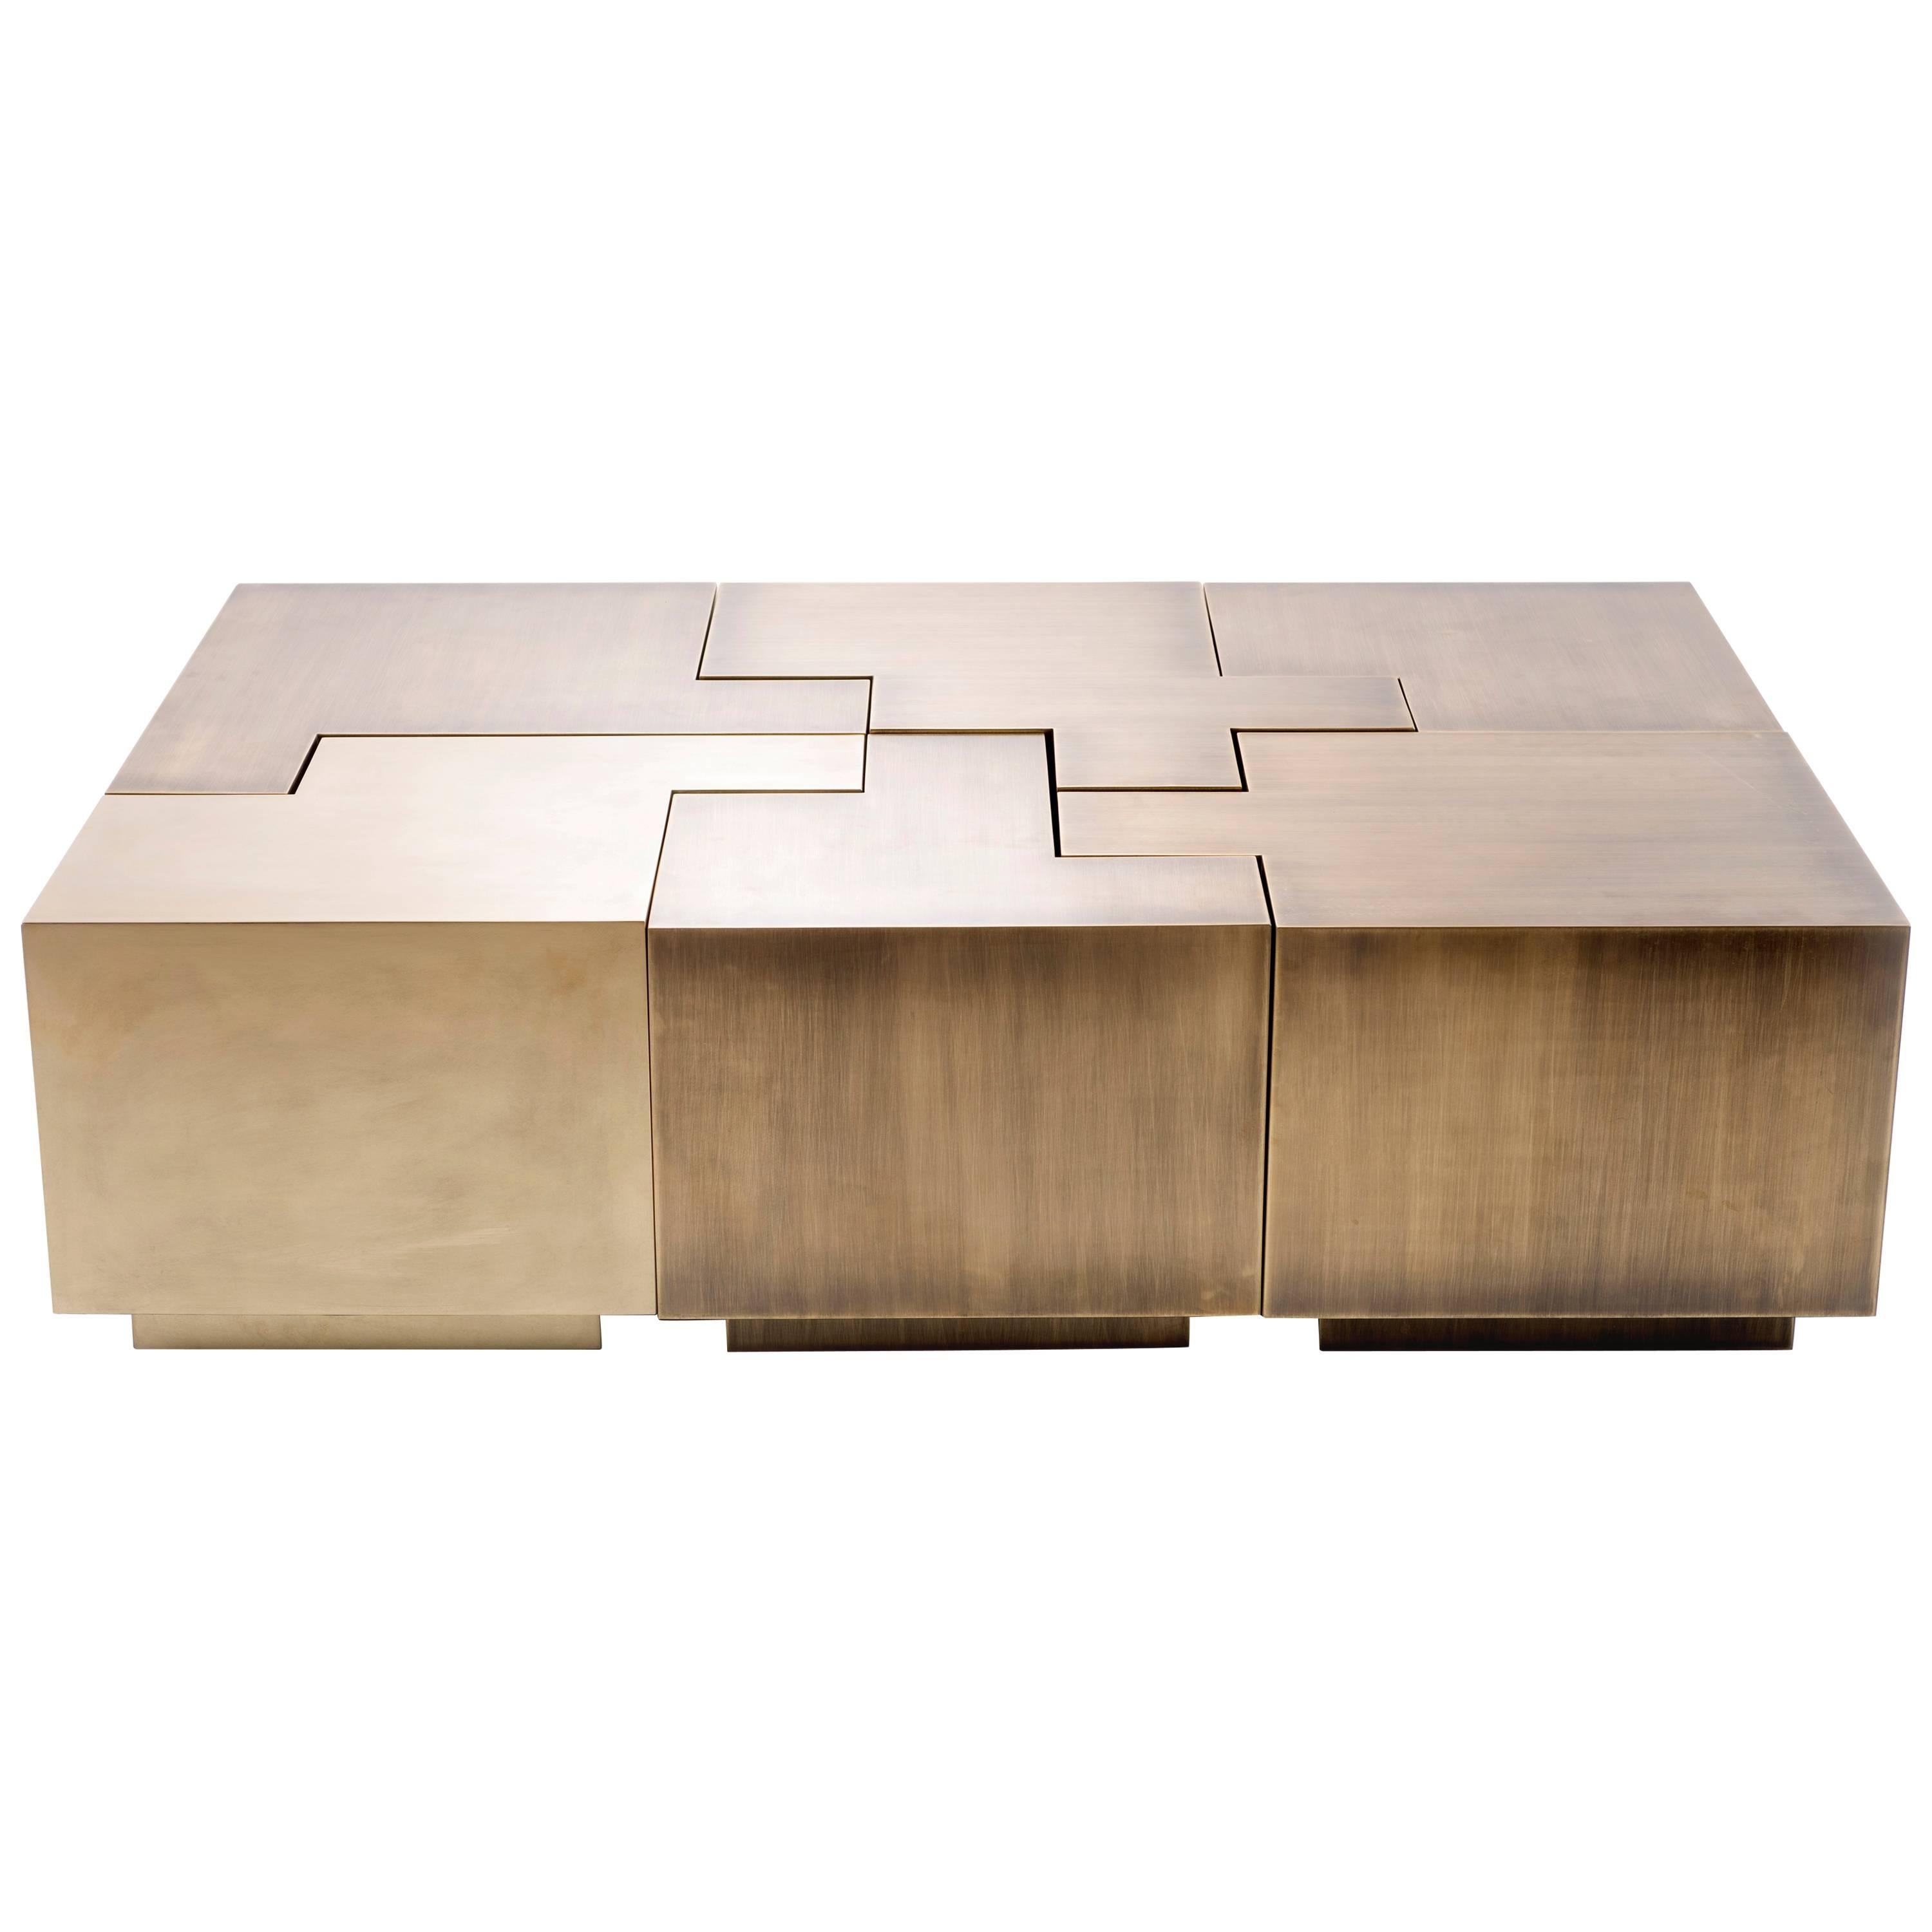 Contemporary Puzzle Coffee Table by Gulla Johnsdottir For Sale at ...